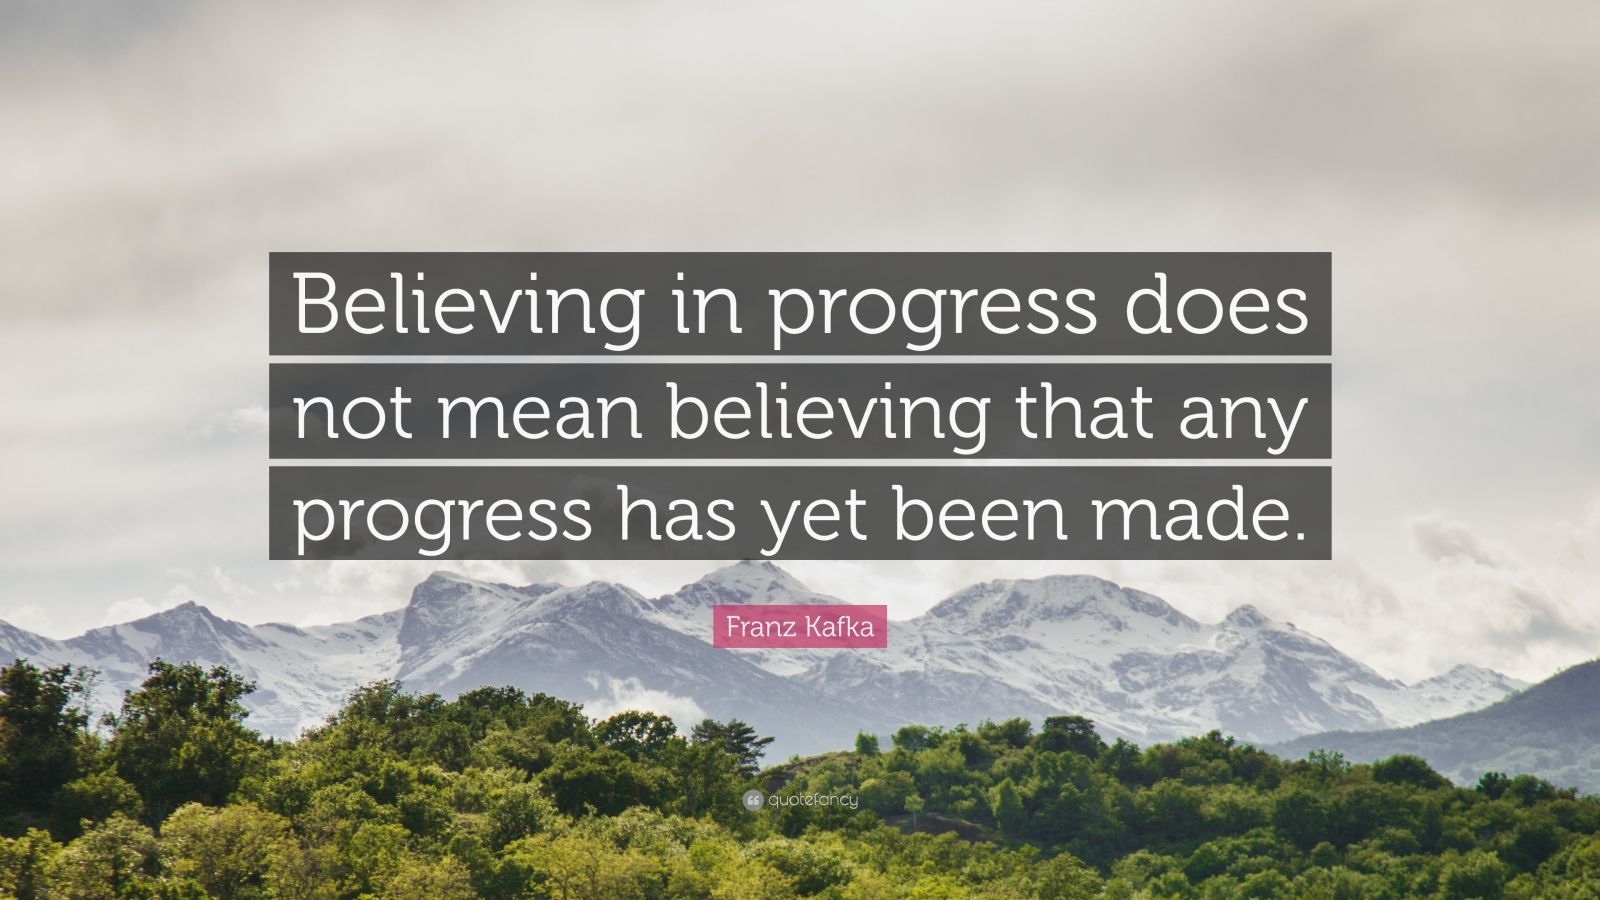 """Franz Kafka Quote: """"Believing in progress does not mean believing that any progress has yet been made."""""""